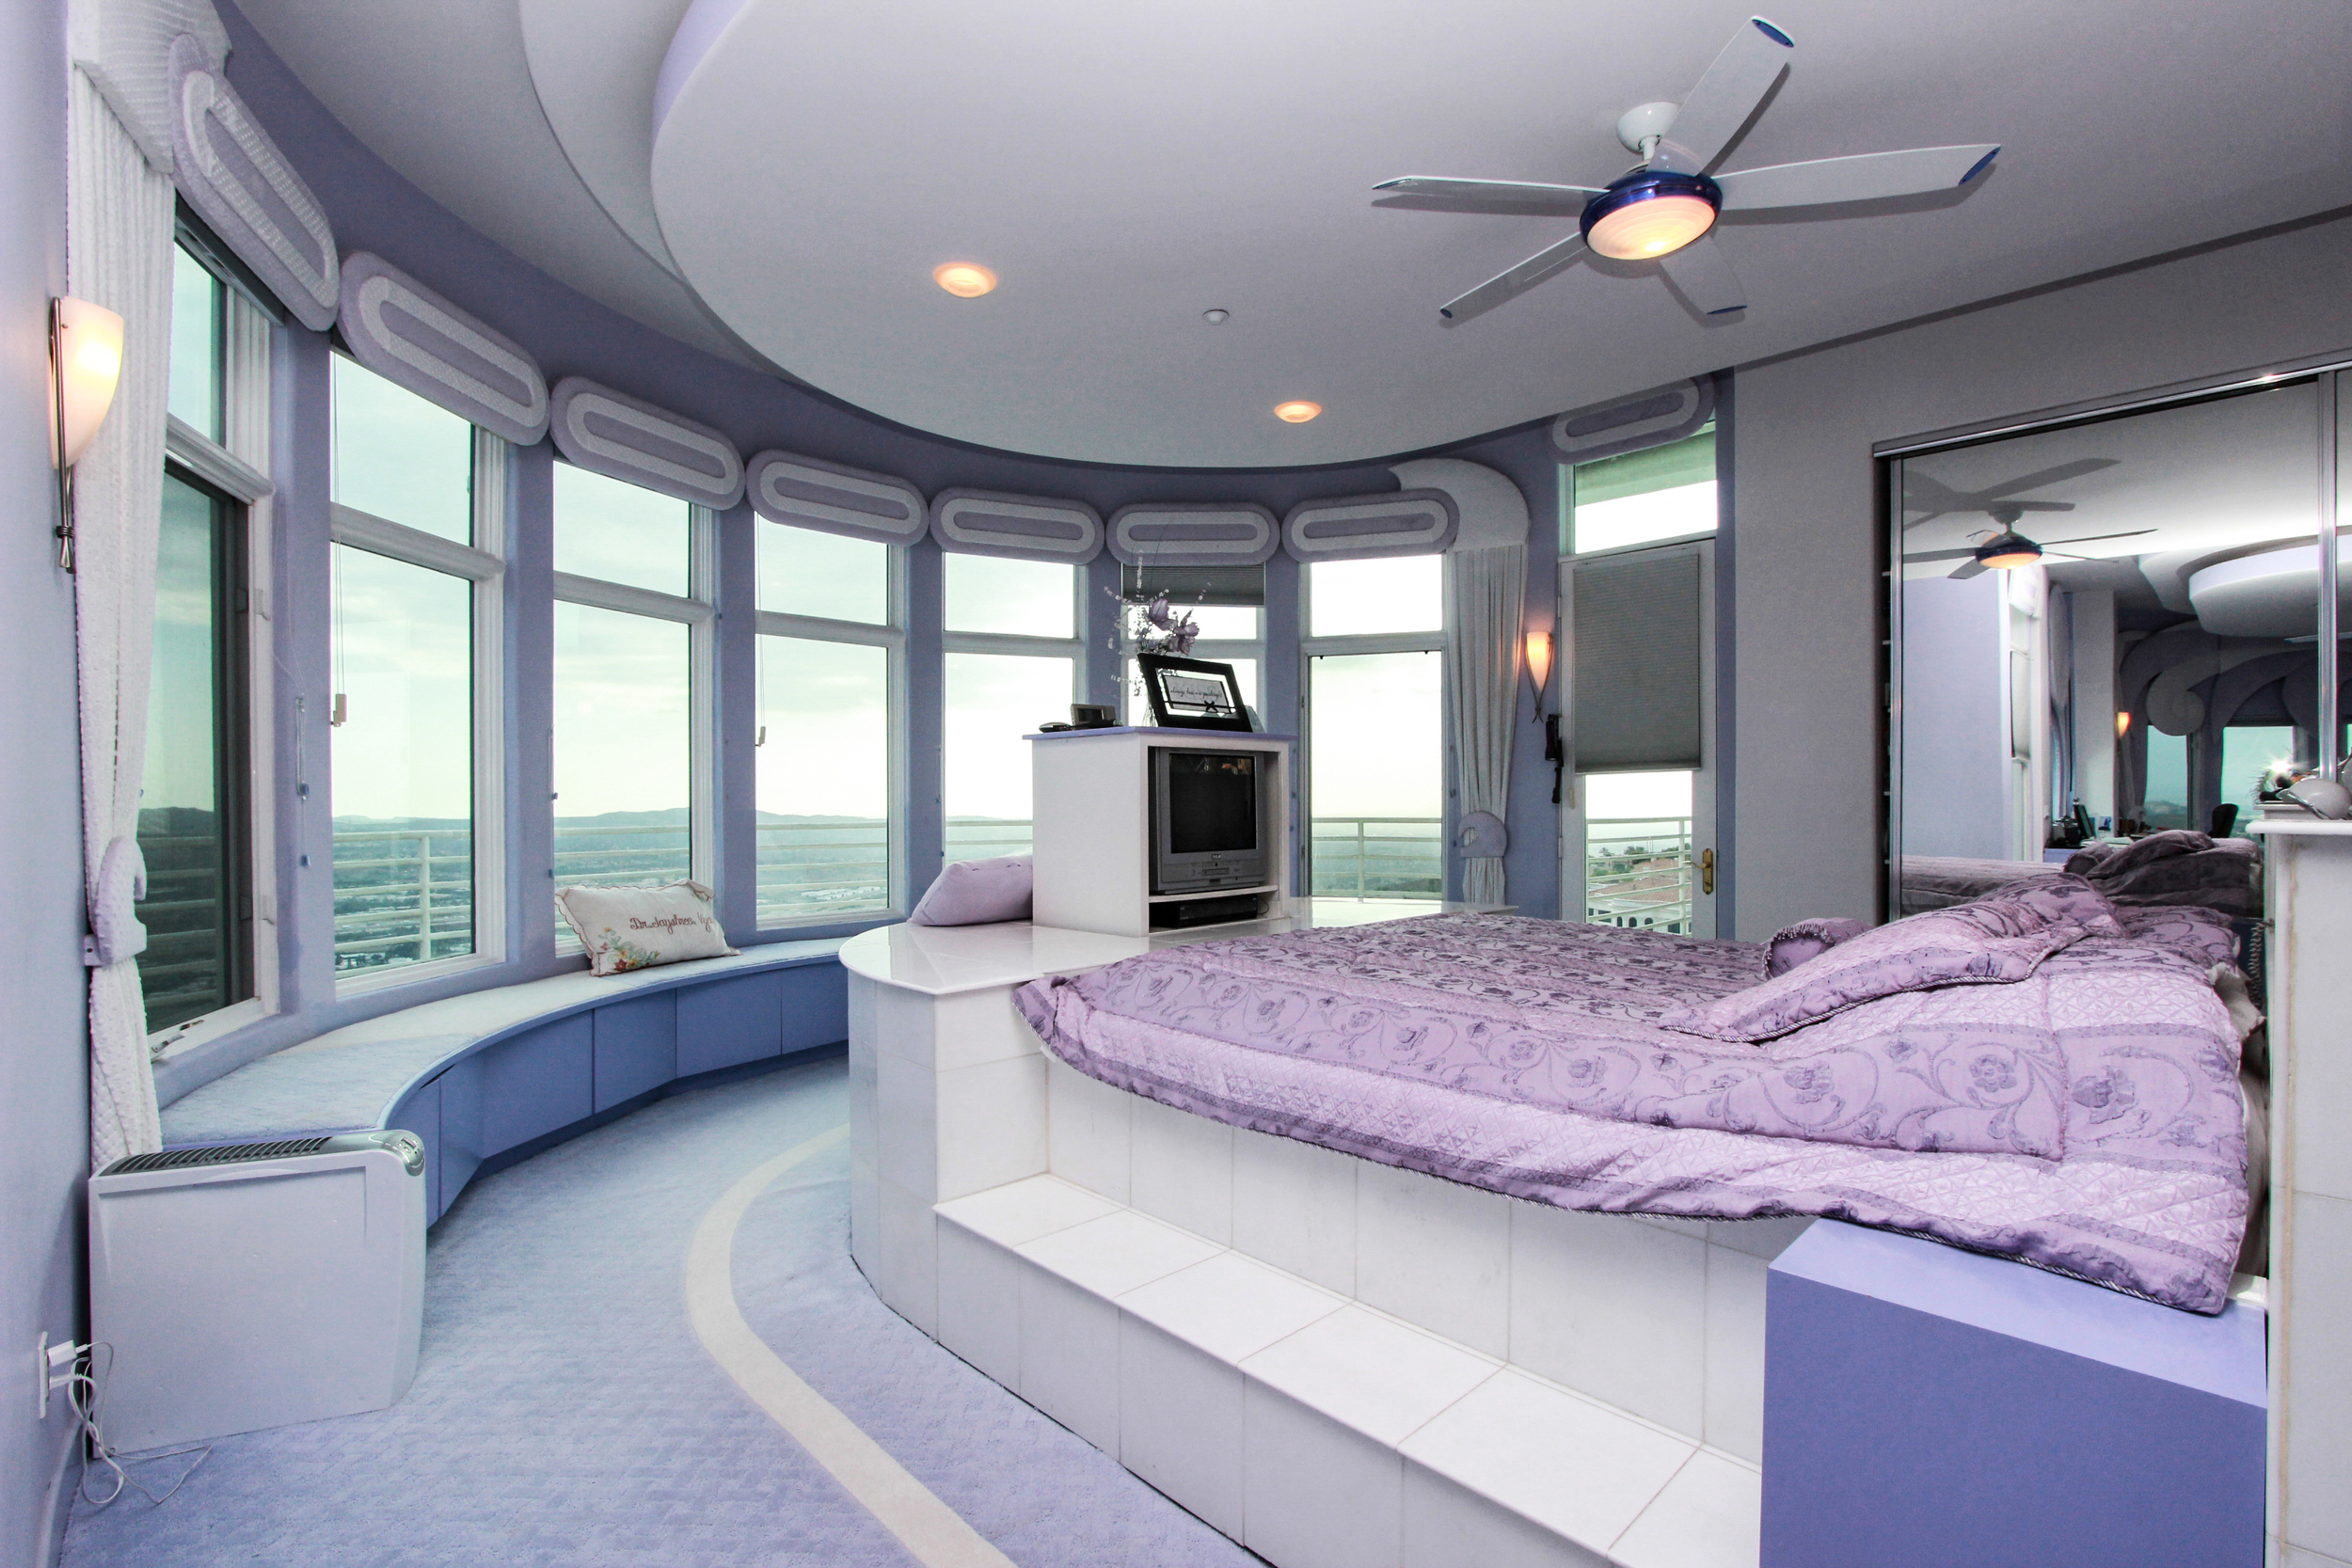 6MasterBedroom_3.jpg